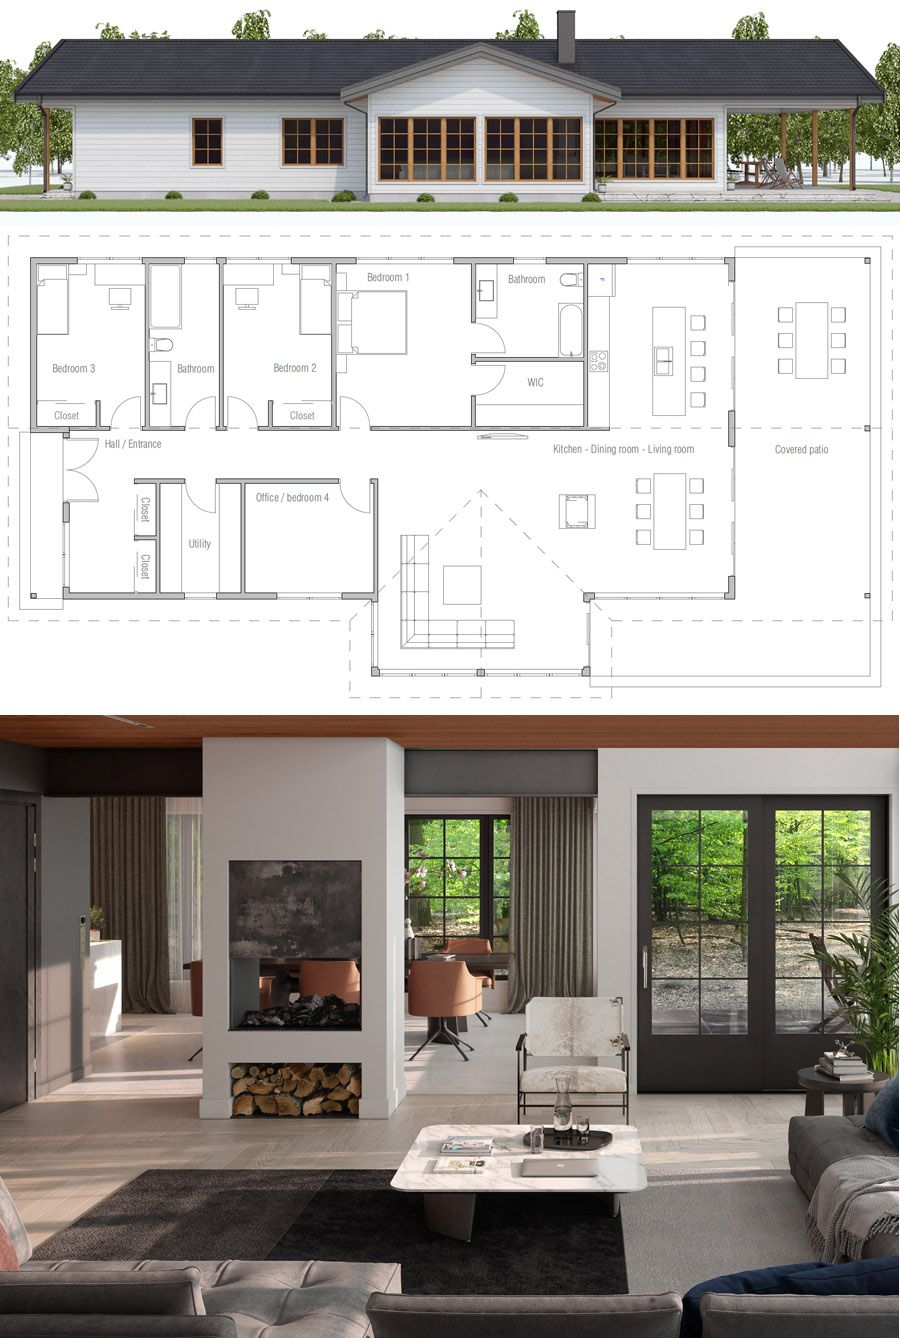 Architecture Home Plan House Plans House Designs Homeplans Homedecor Newhome Floorplans House Plans House Floor Plans House Layouts